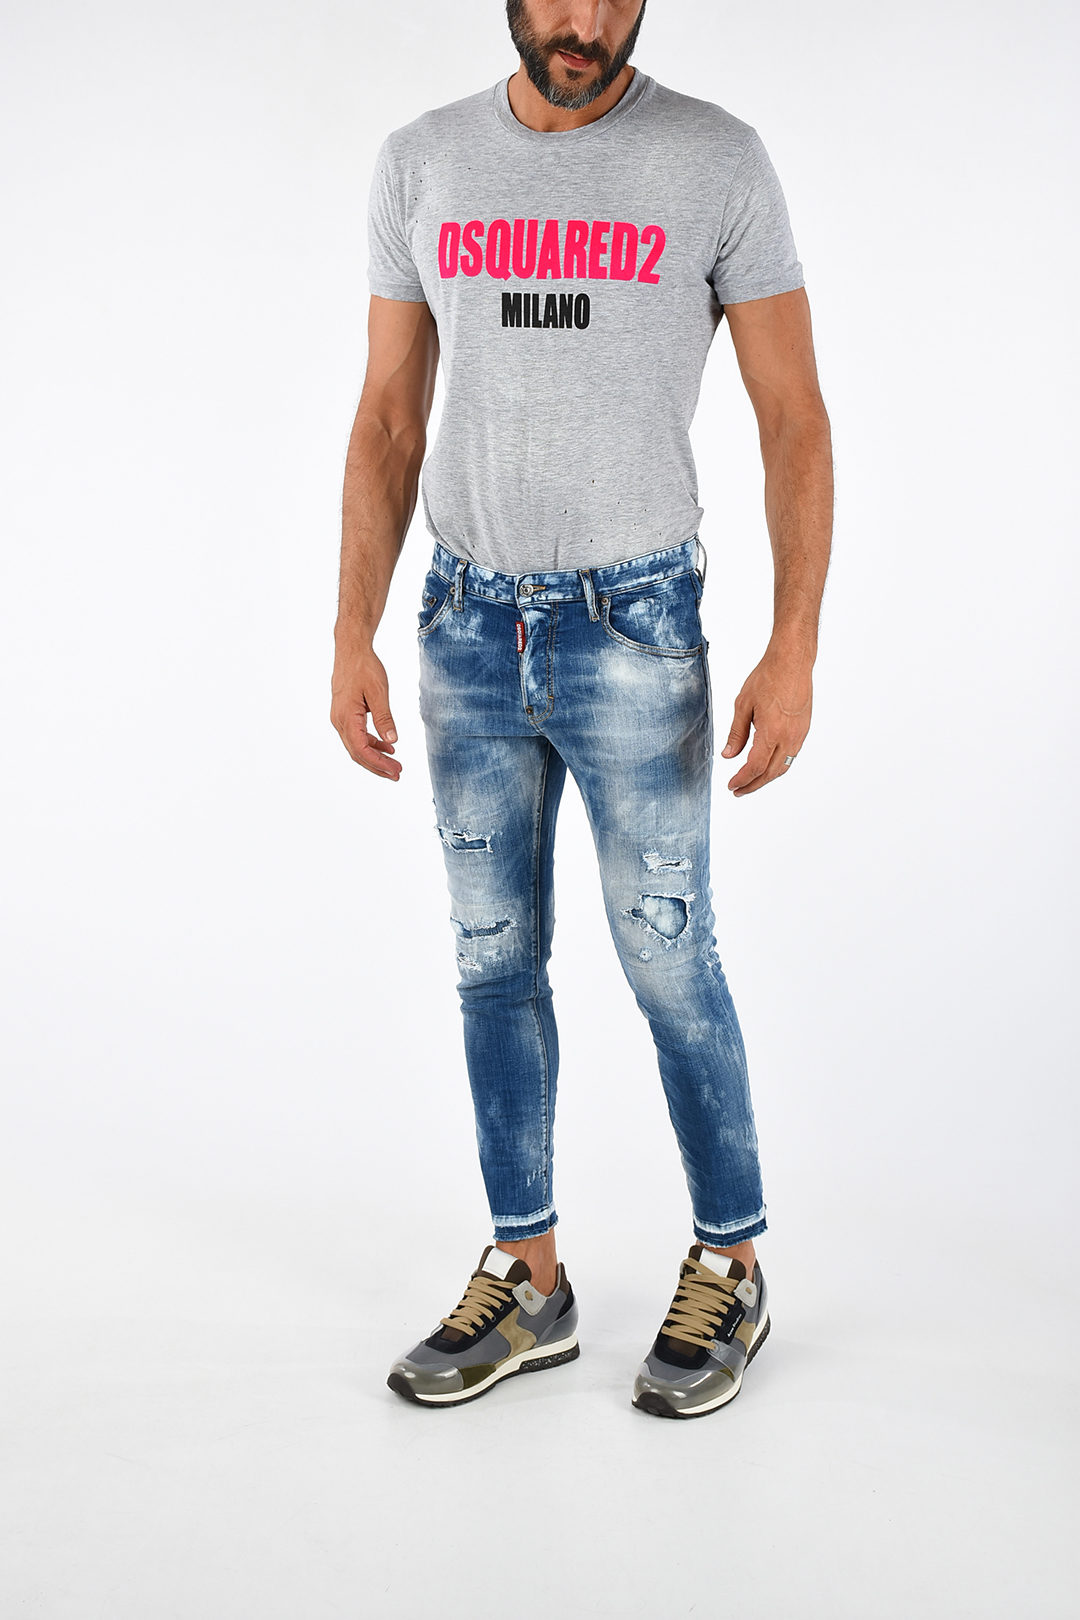 Outlet Dsquared2 uomo Glamood Outlet